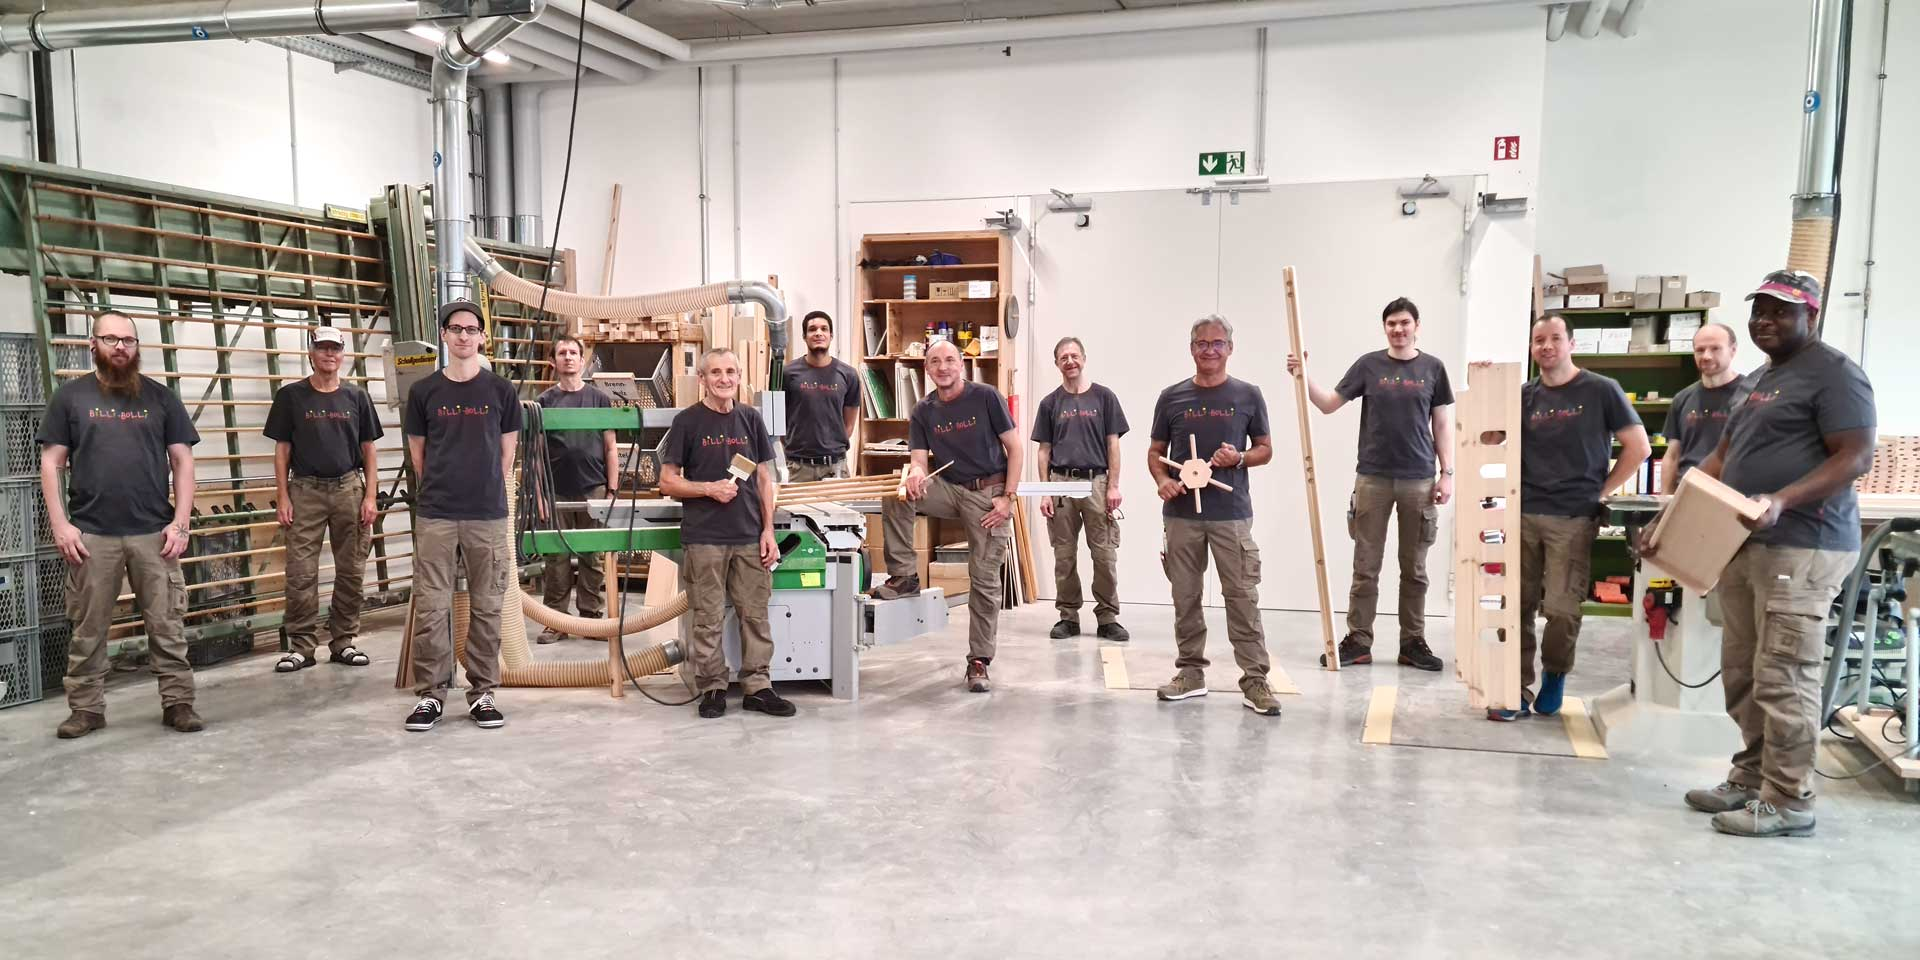 The workshop team